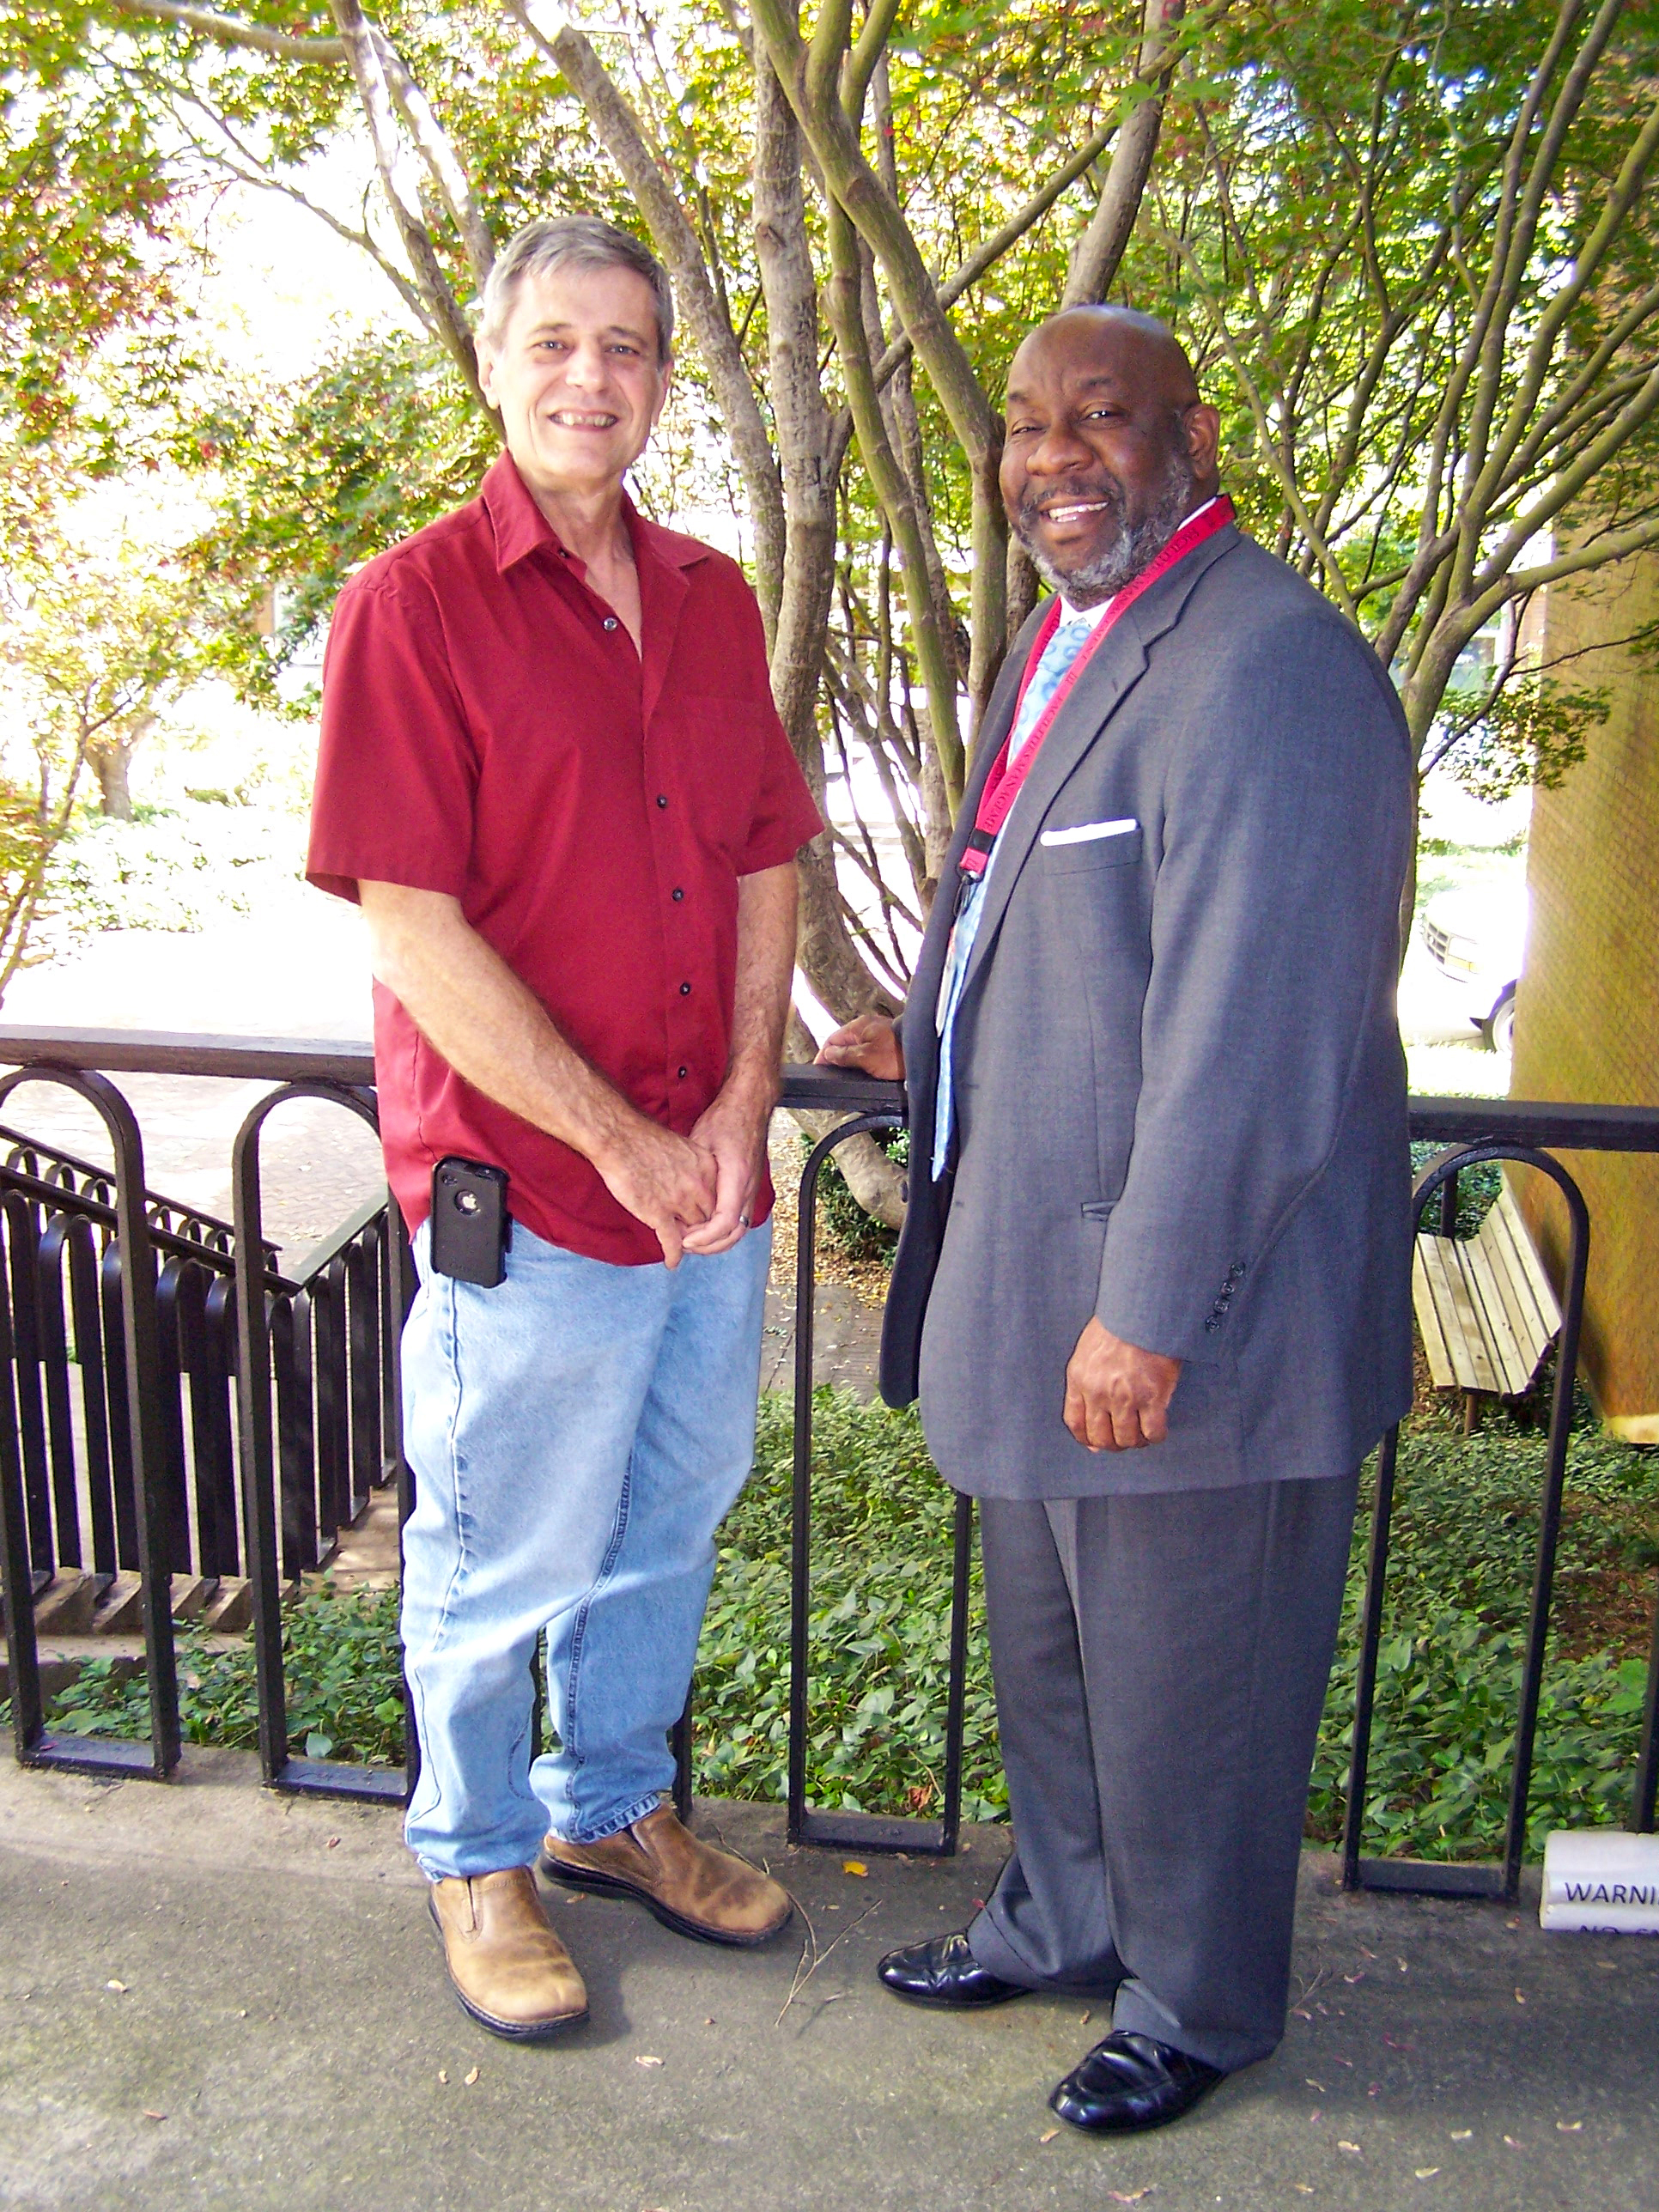 UGA College of Agricultural and Environmental Sciences entomologist Brian Forschler and Dexter Fisher, director of services for UGA Facilities Management, have worked together for the last several years to help keep the Athens Campus free of termite damage.